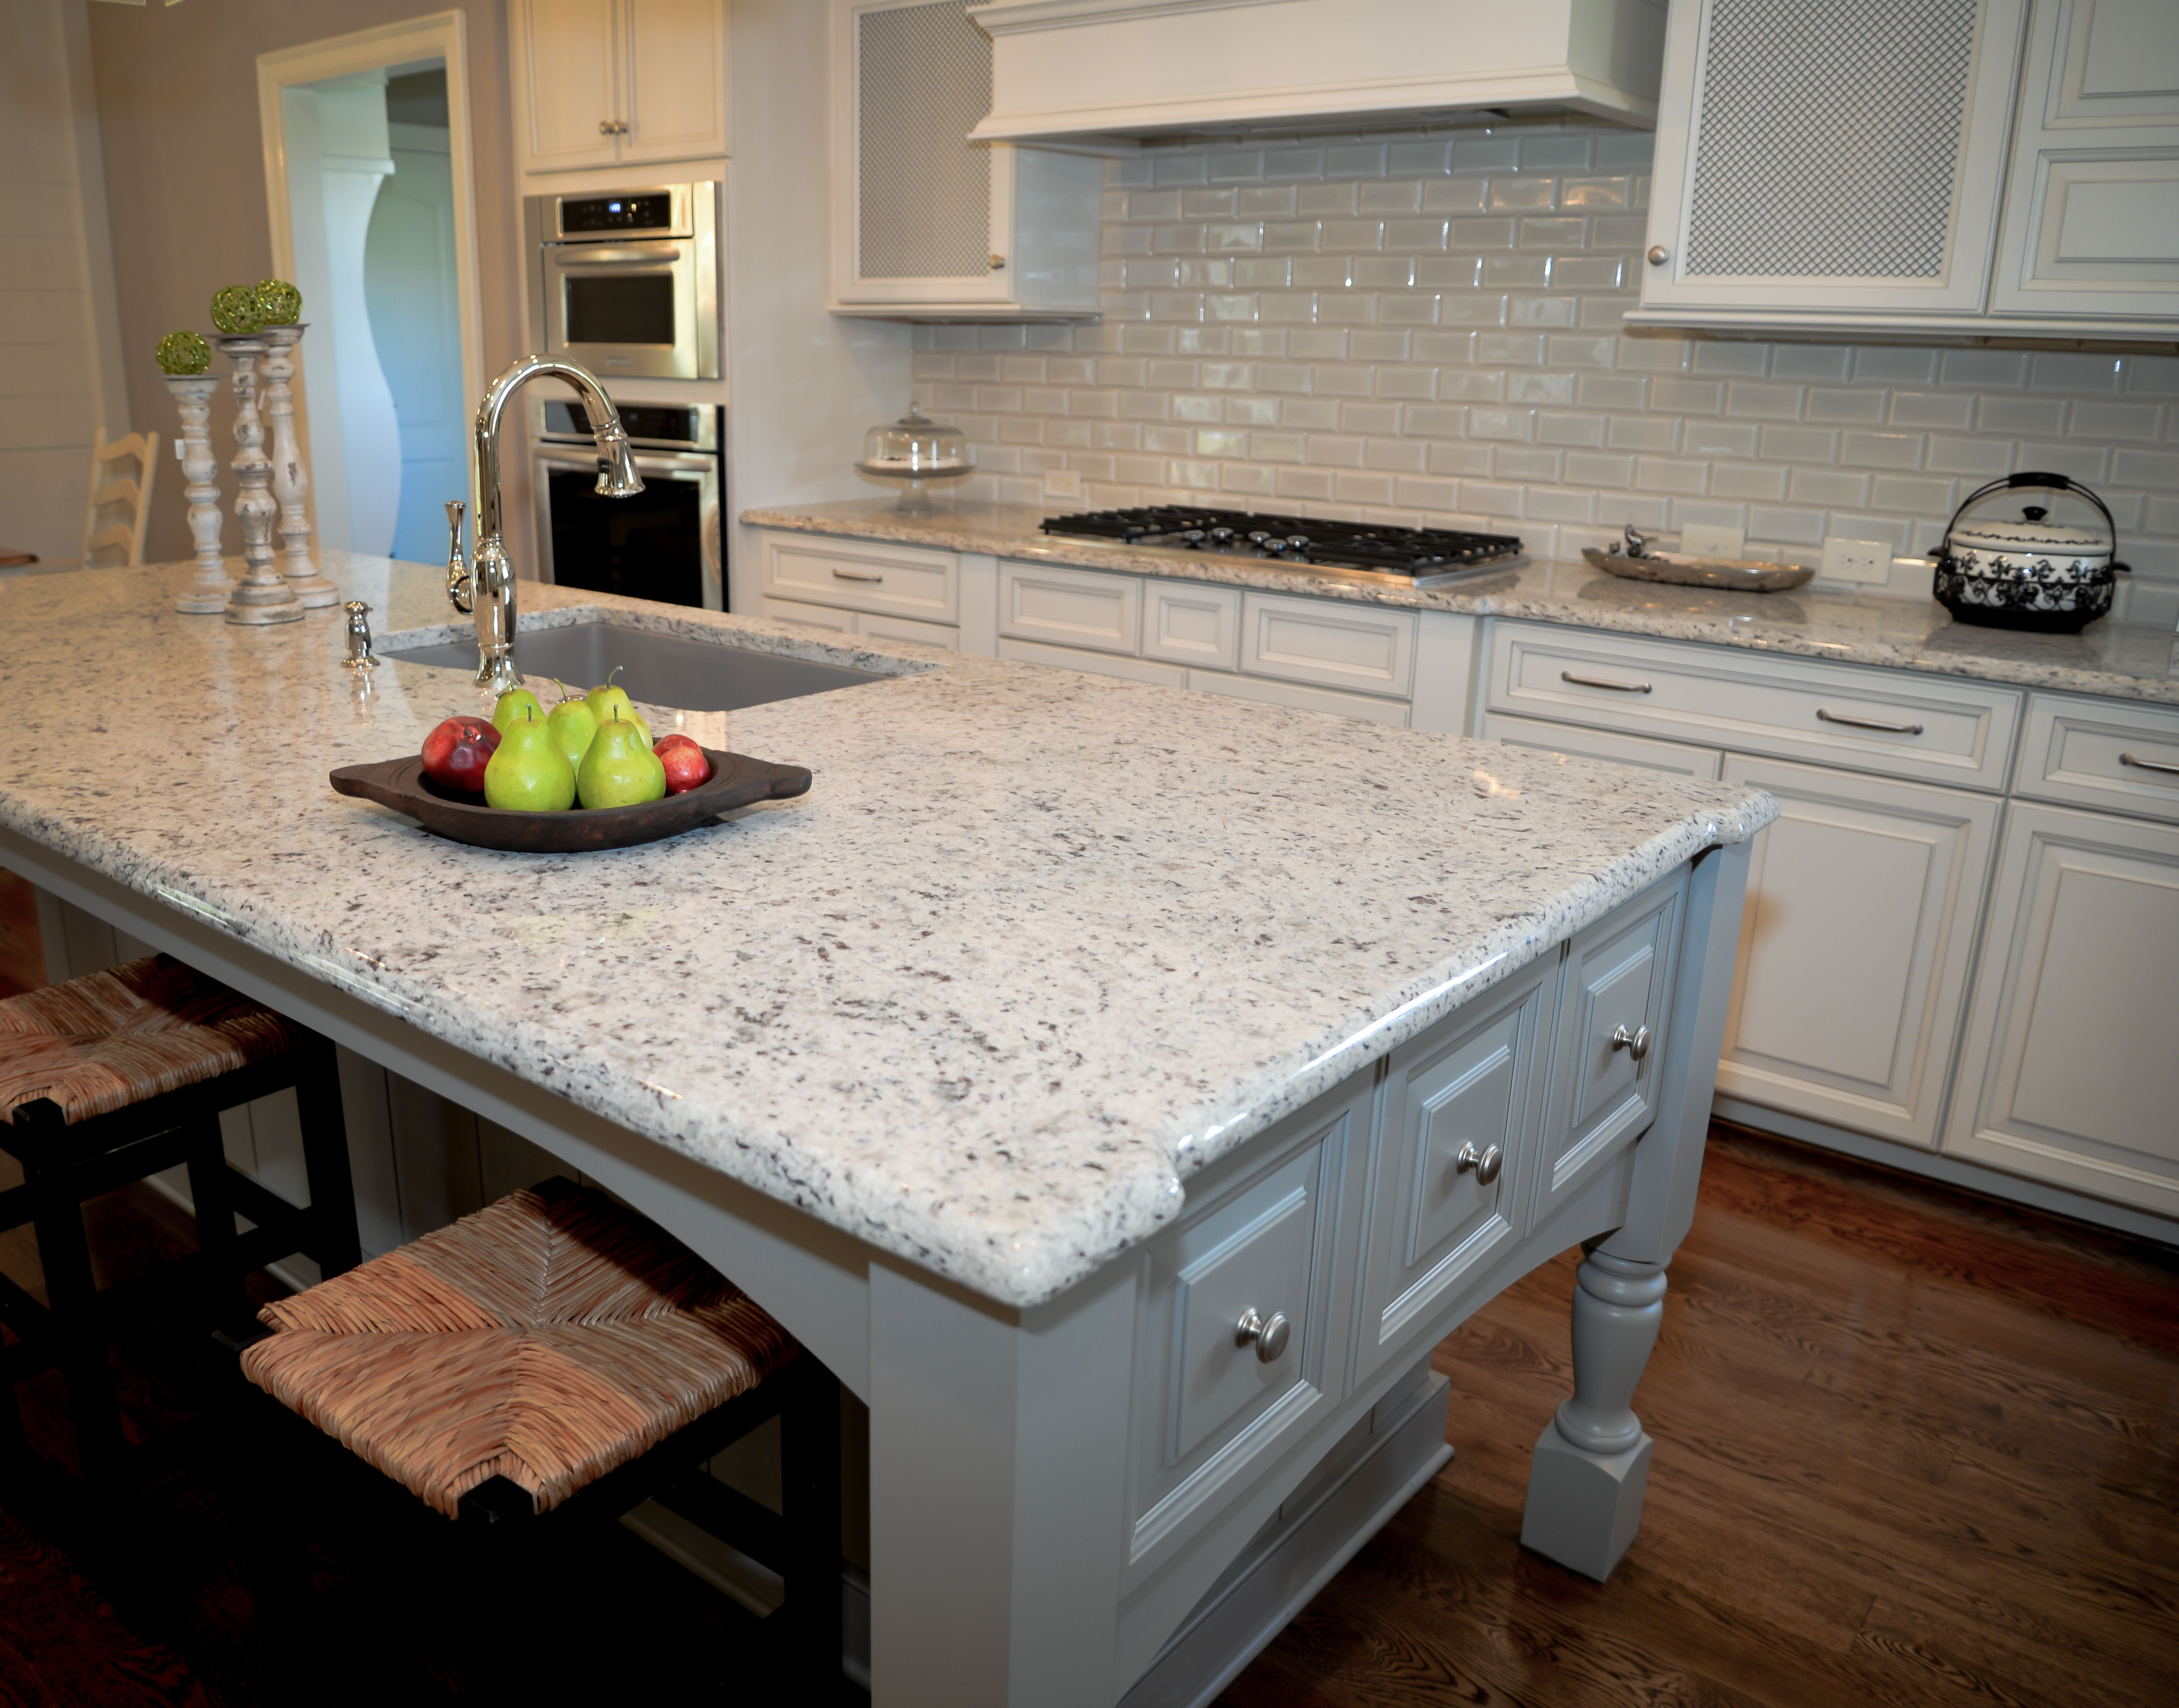 Pin By Bloomday Granite Marble On Bloomday Granite Marble Finished Product Kitchen Marble Granite Home Decor